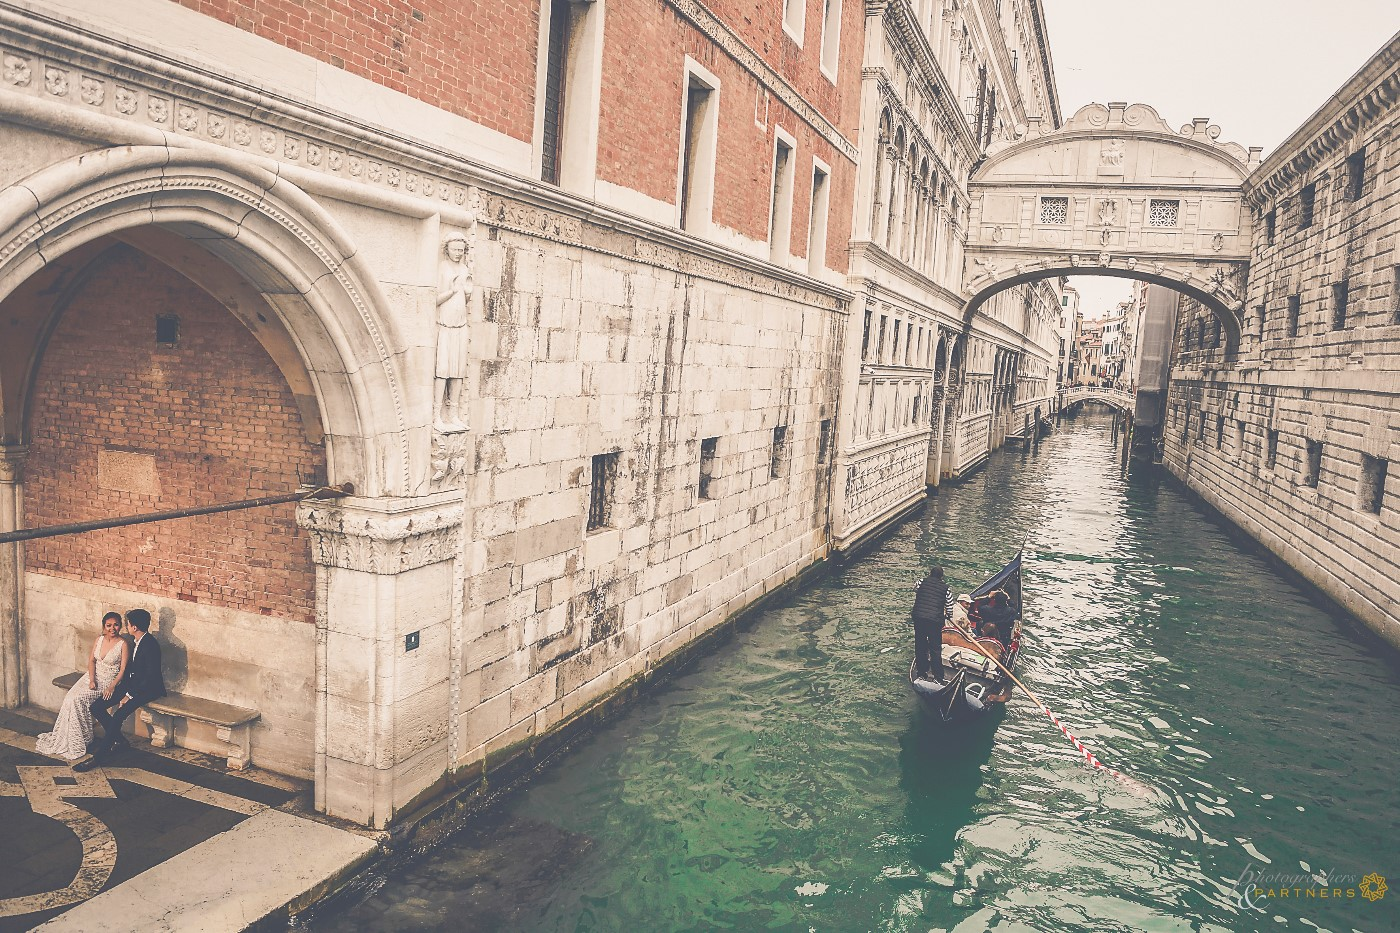 Near the Bridge of Sighs, spectacular view 🤩